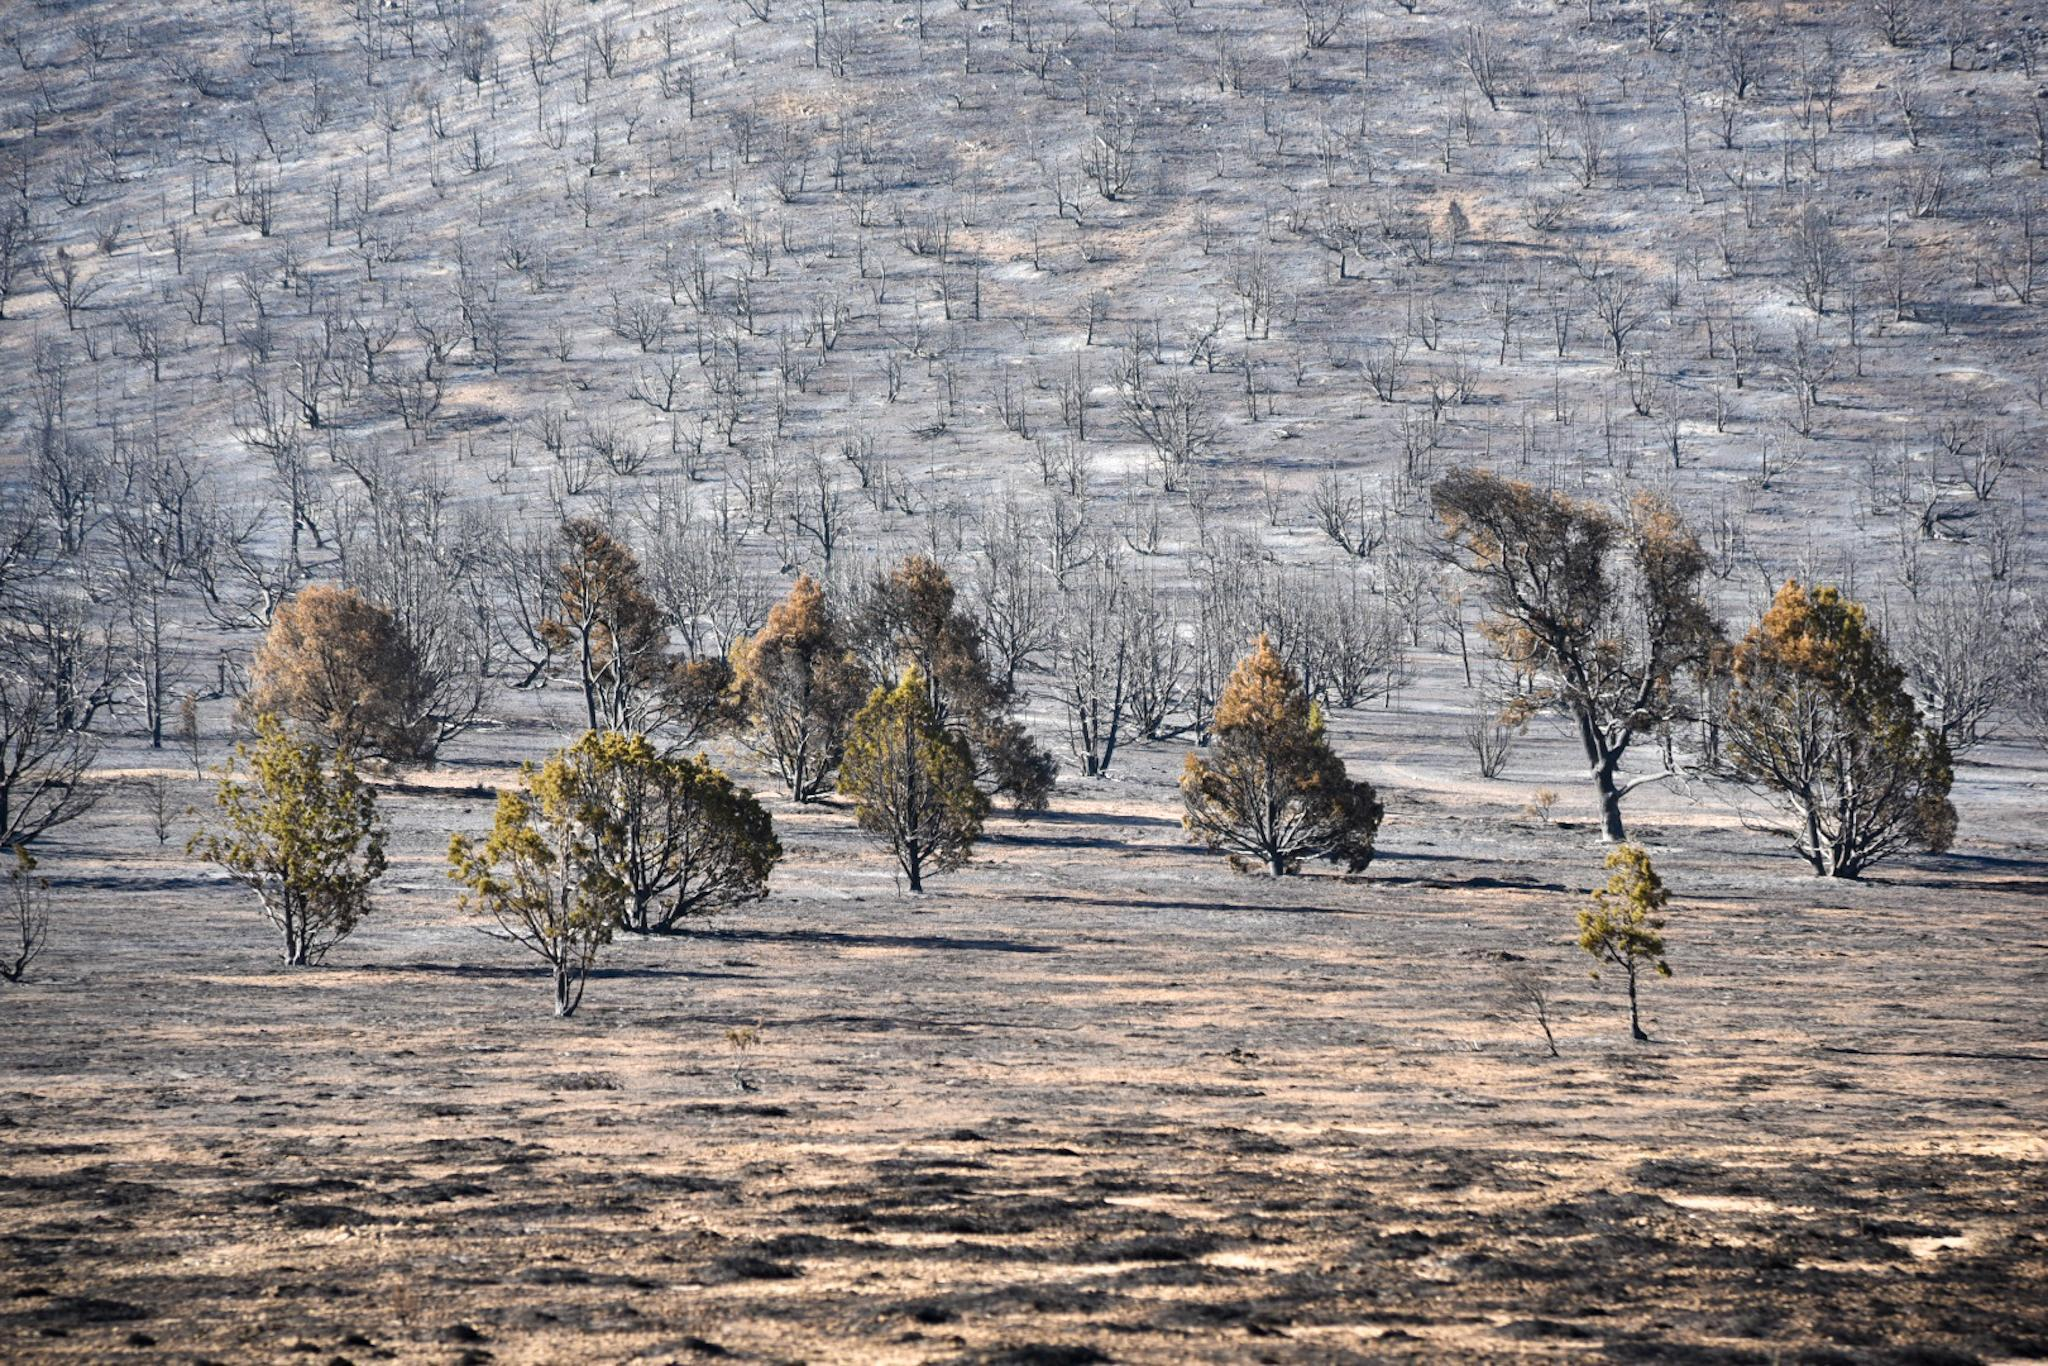 Burned area with burnt trees and brush.